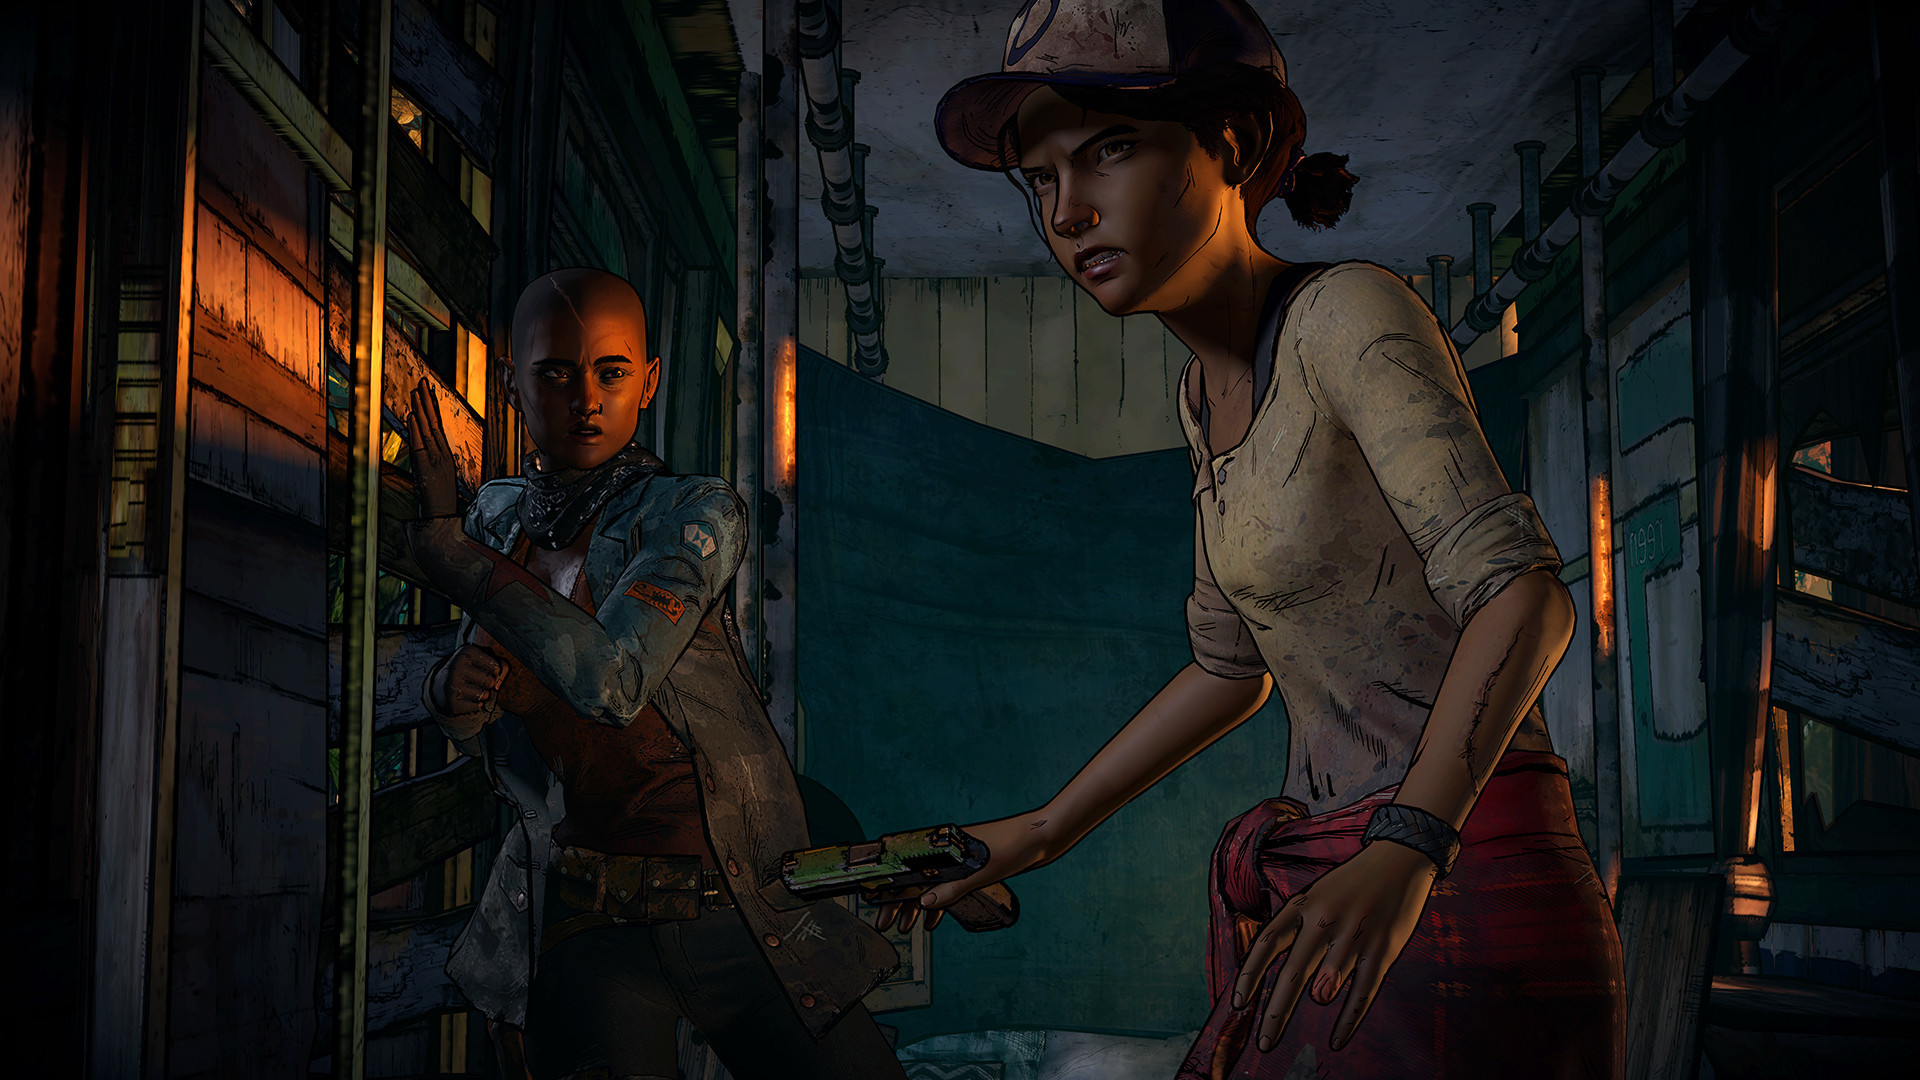 Video Game – The Walking Dead: A New Frontier Clementine (The Walking Dead)